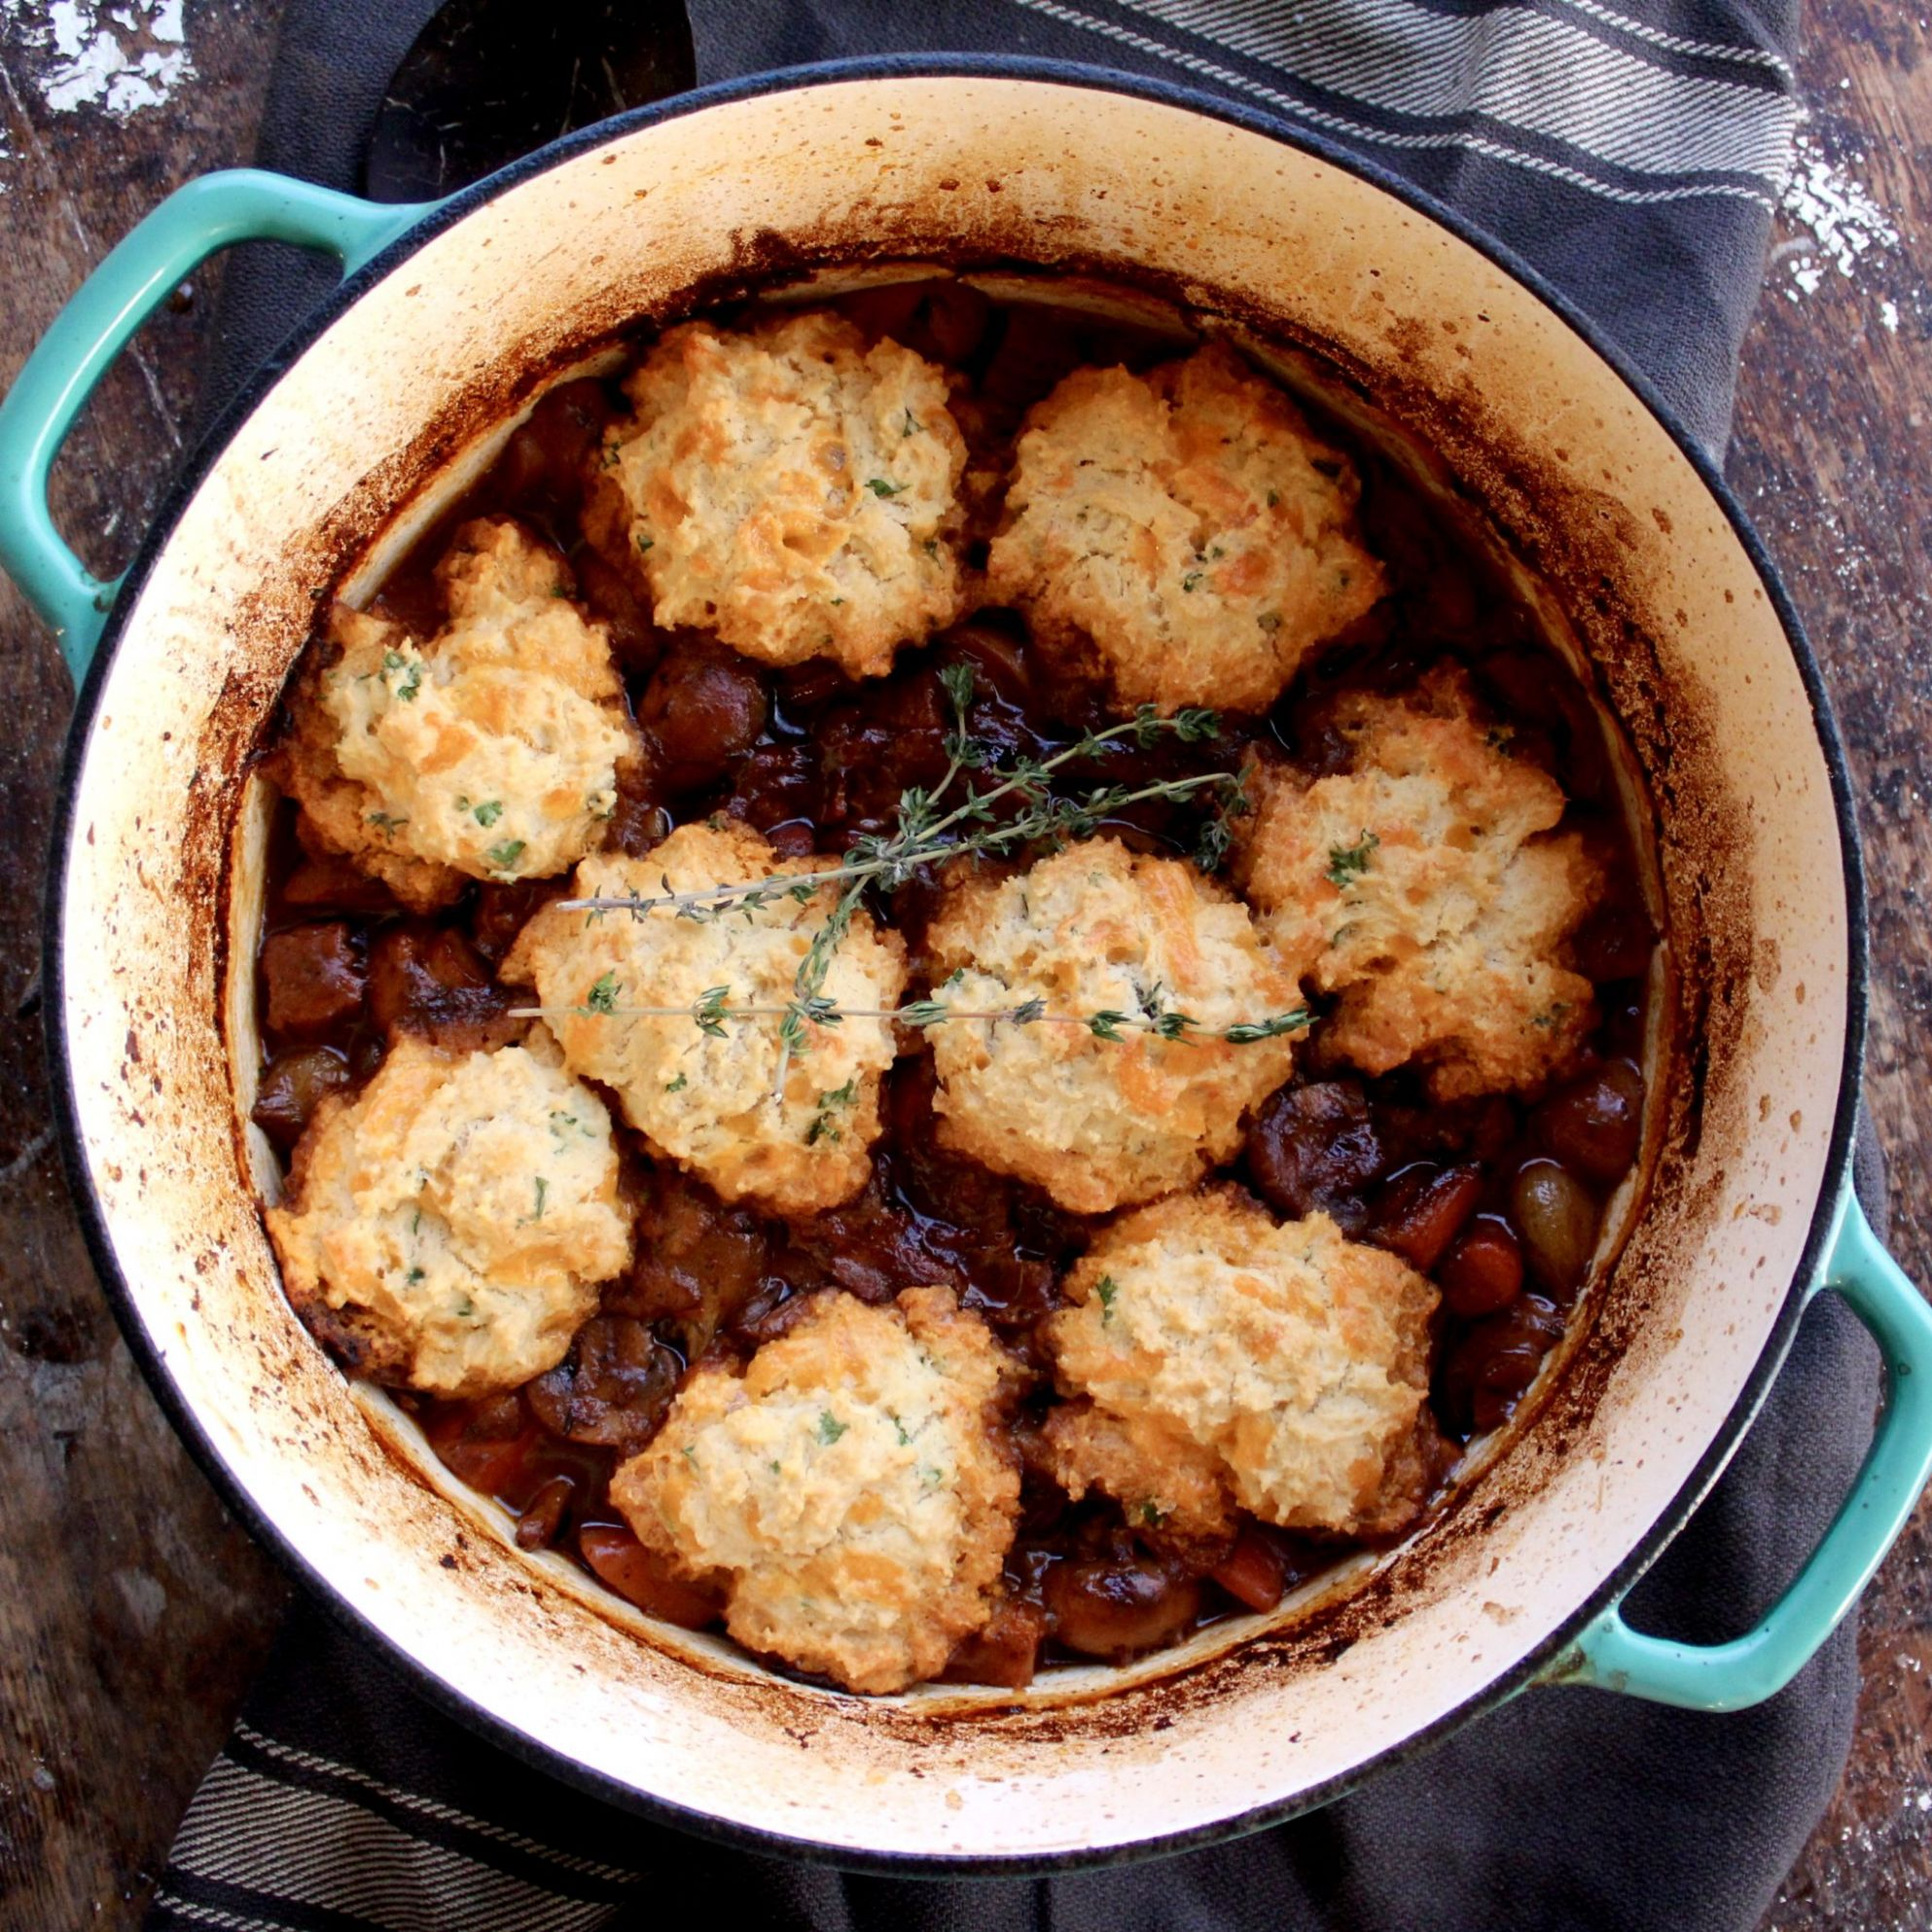 Beef Stew with Cheddar and Herb Dumplings